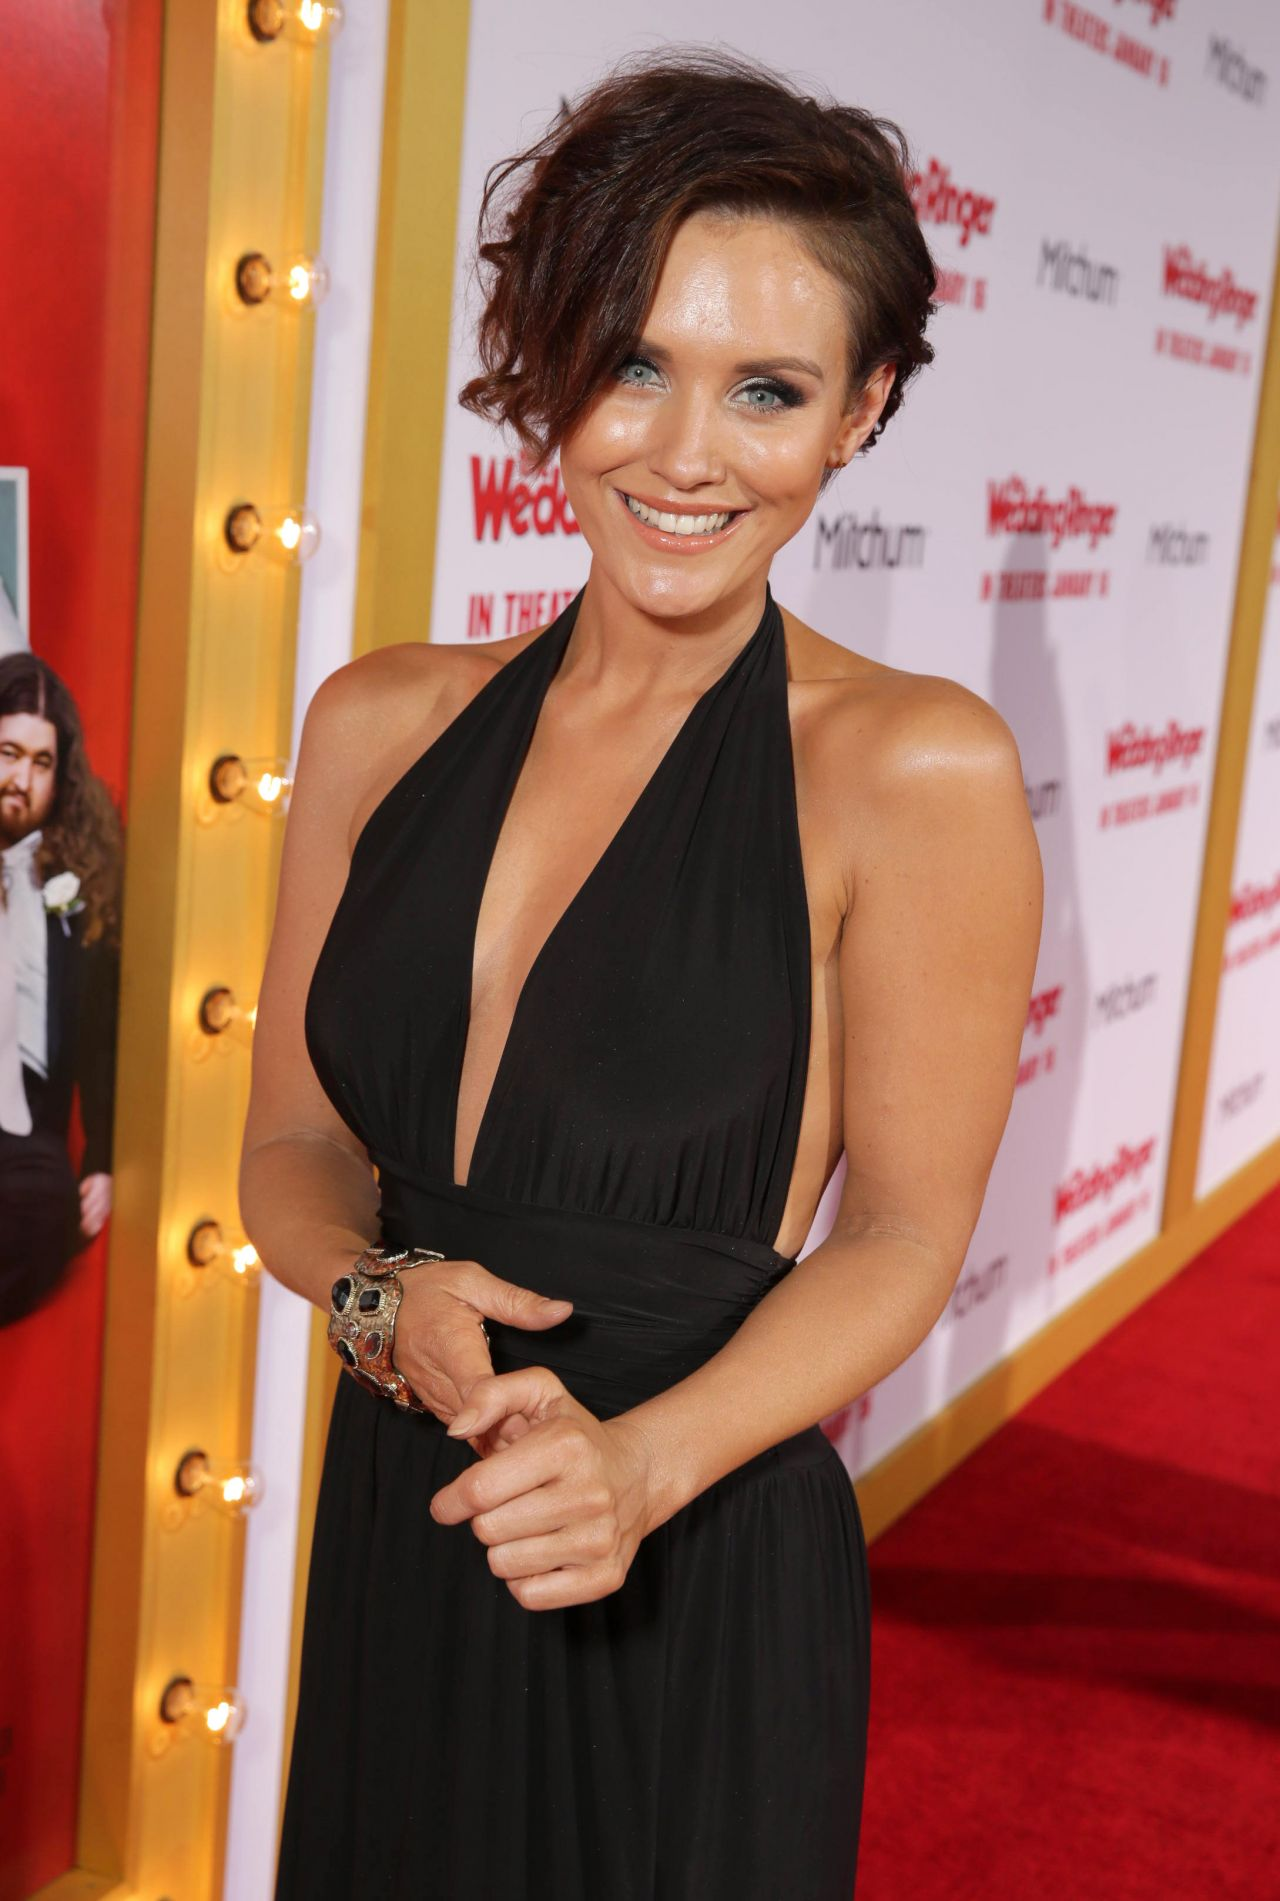 The Wedding Ringer.Nicky Whelan The Wedding Ringer Premiere In Hollywood